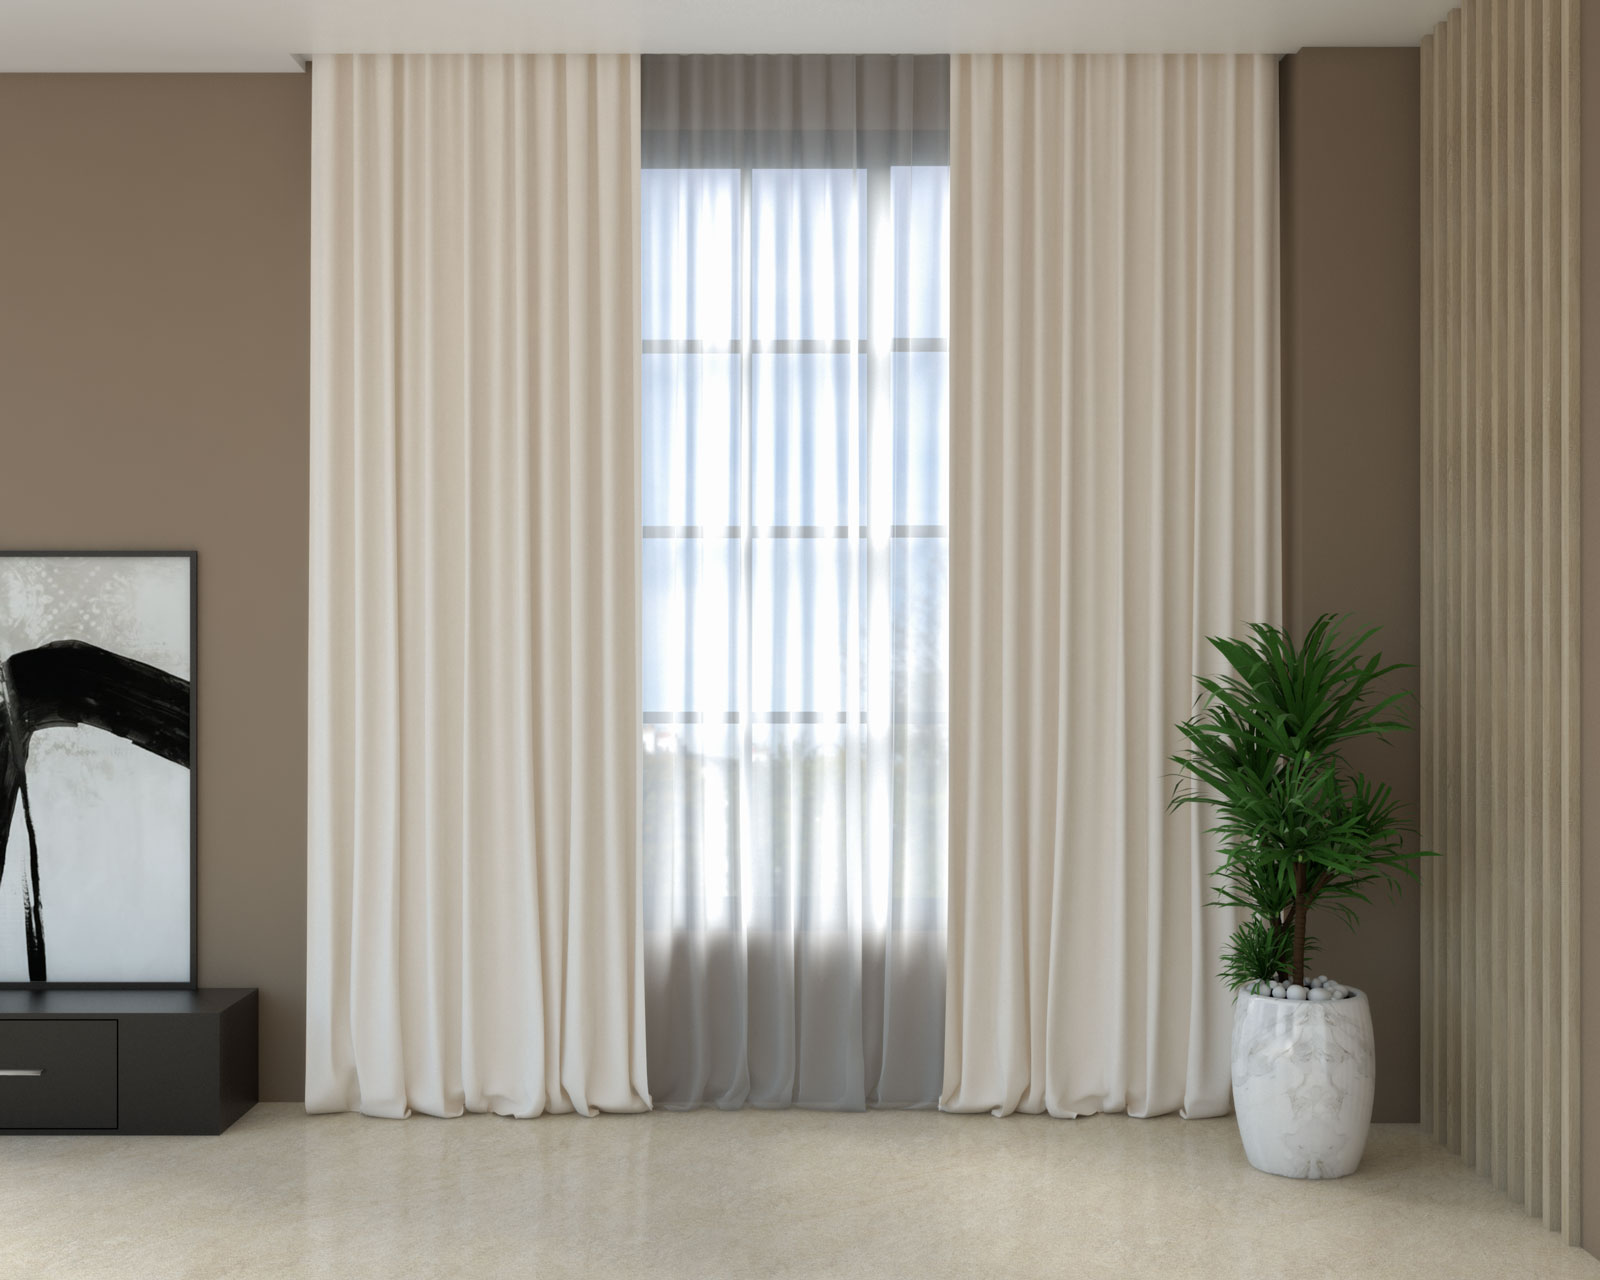 Cream curtains with brown walls